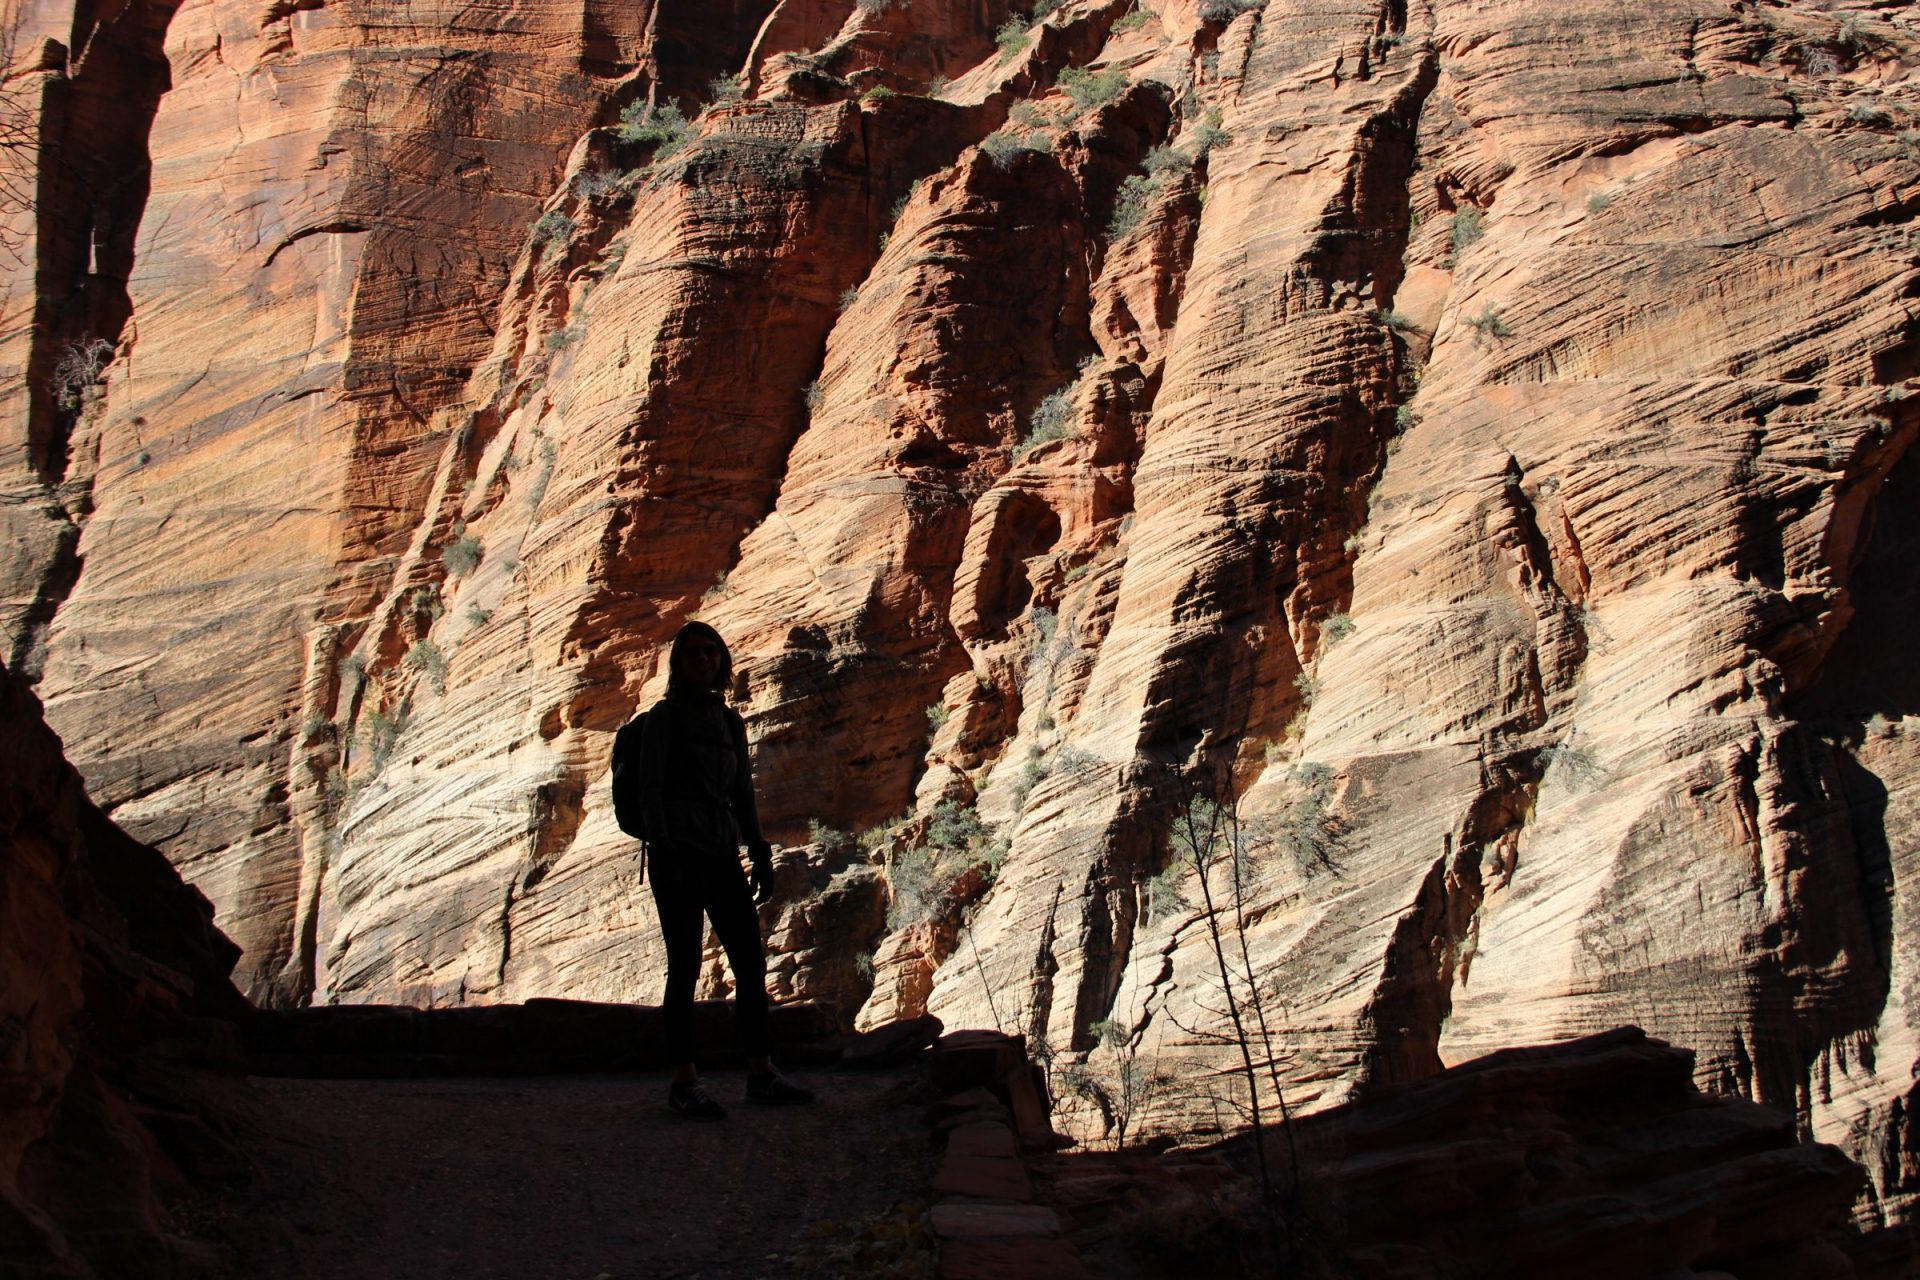 Silhouette of Woman in Front of Cliffs